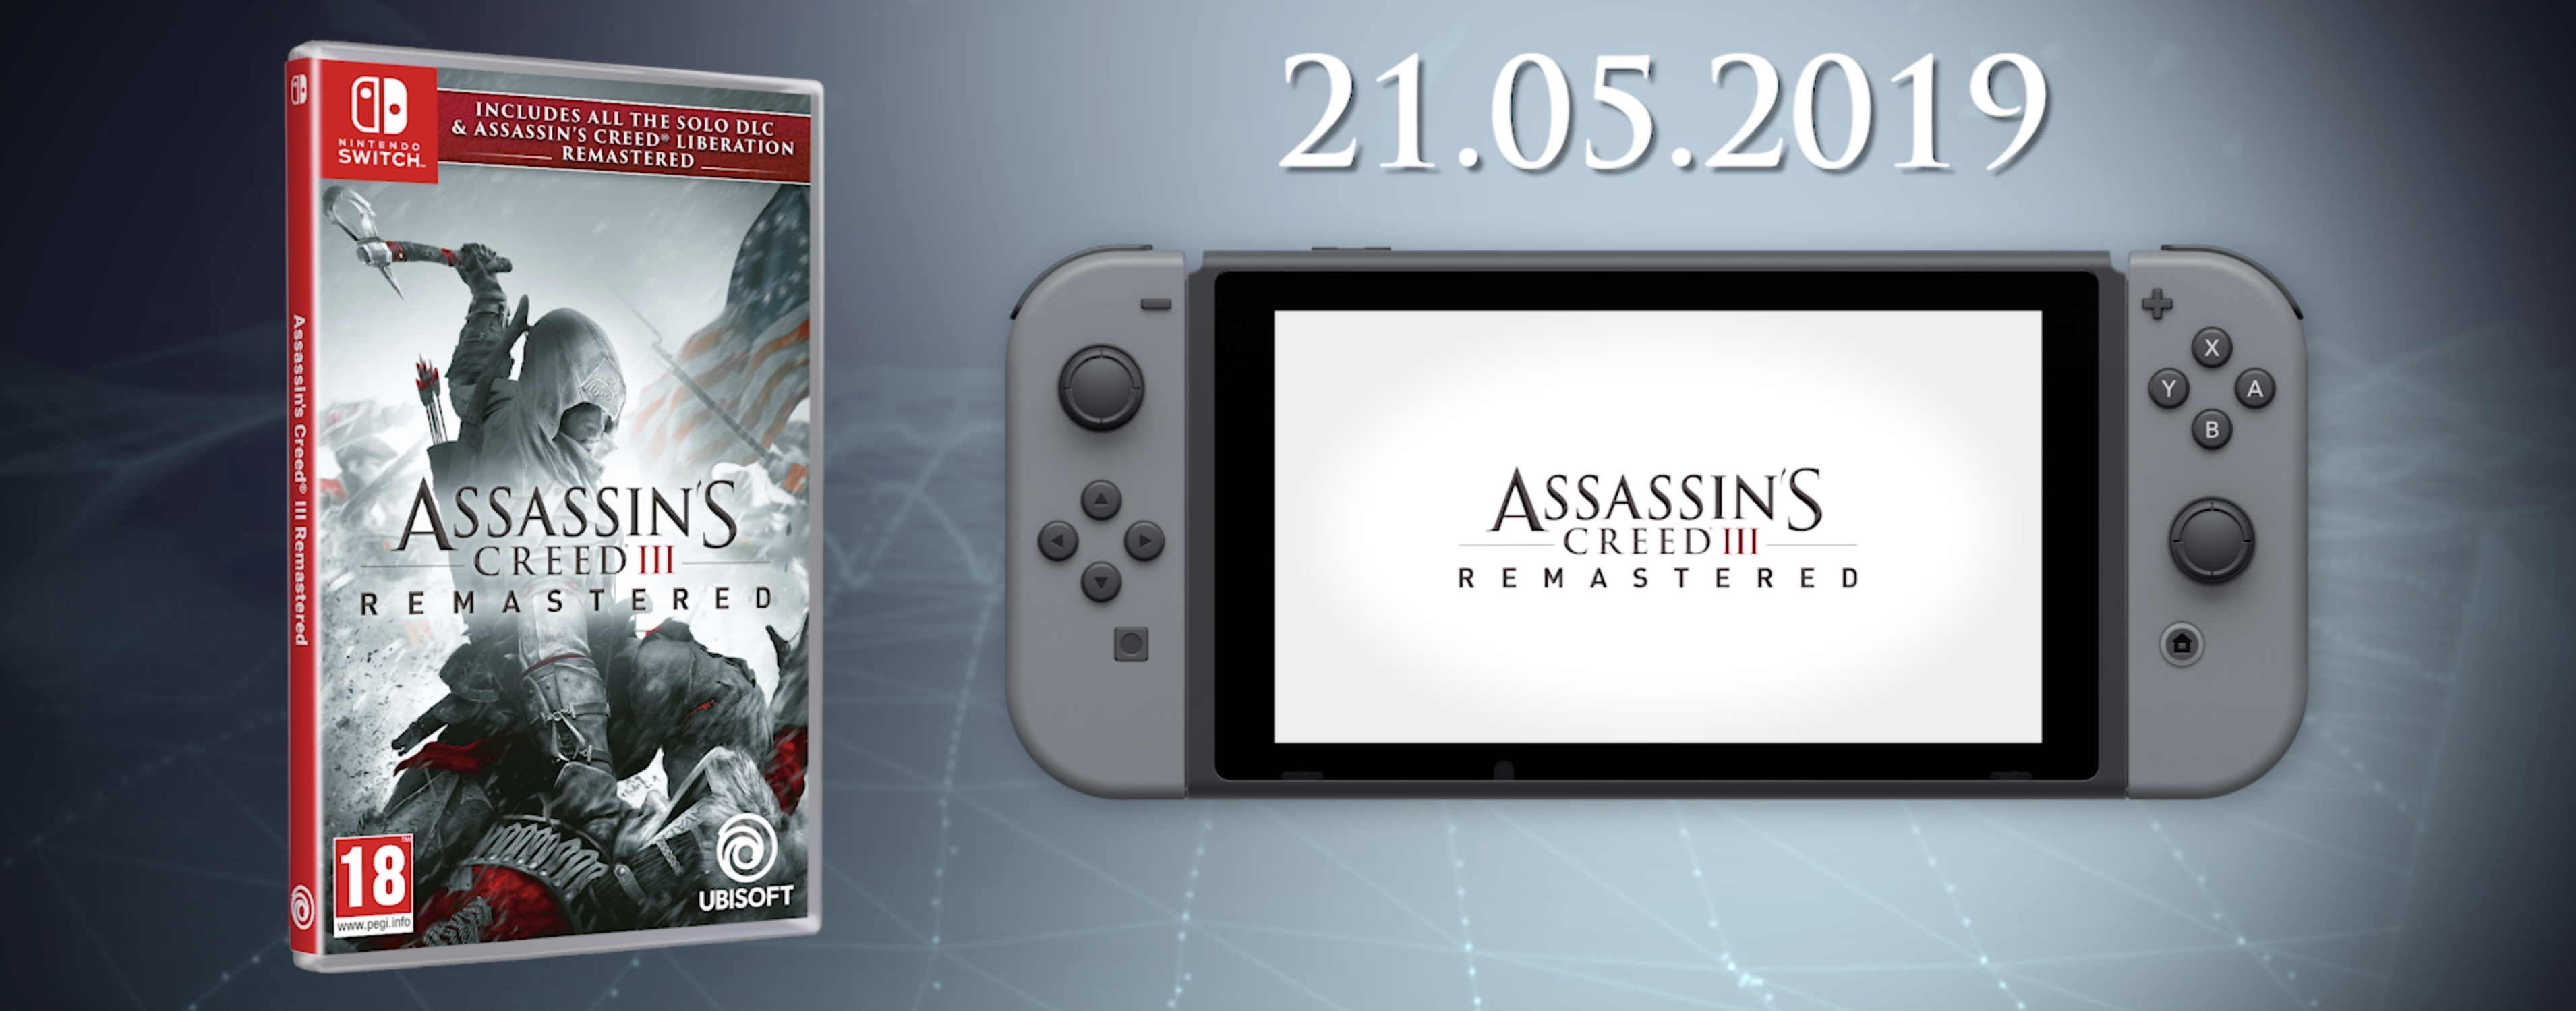 Assassin's Creed III + Liberation Remastered Coming to Nintendo Switch in May!